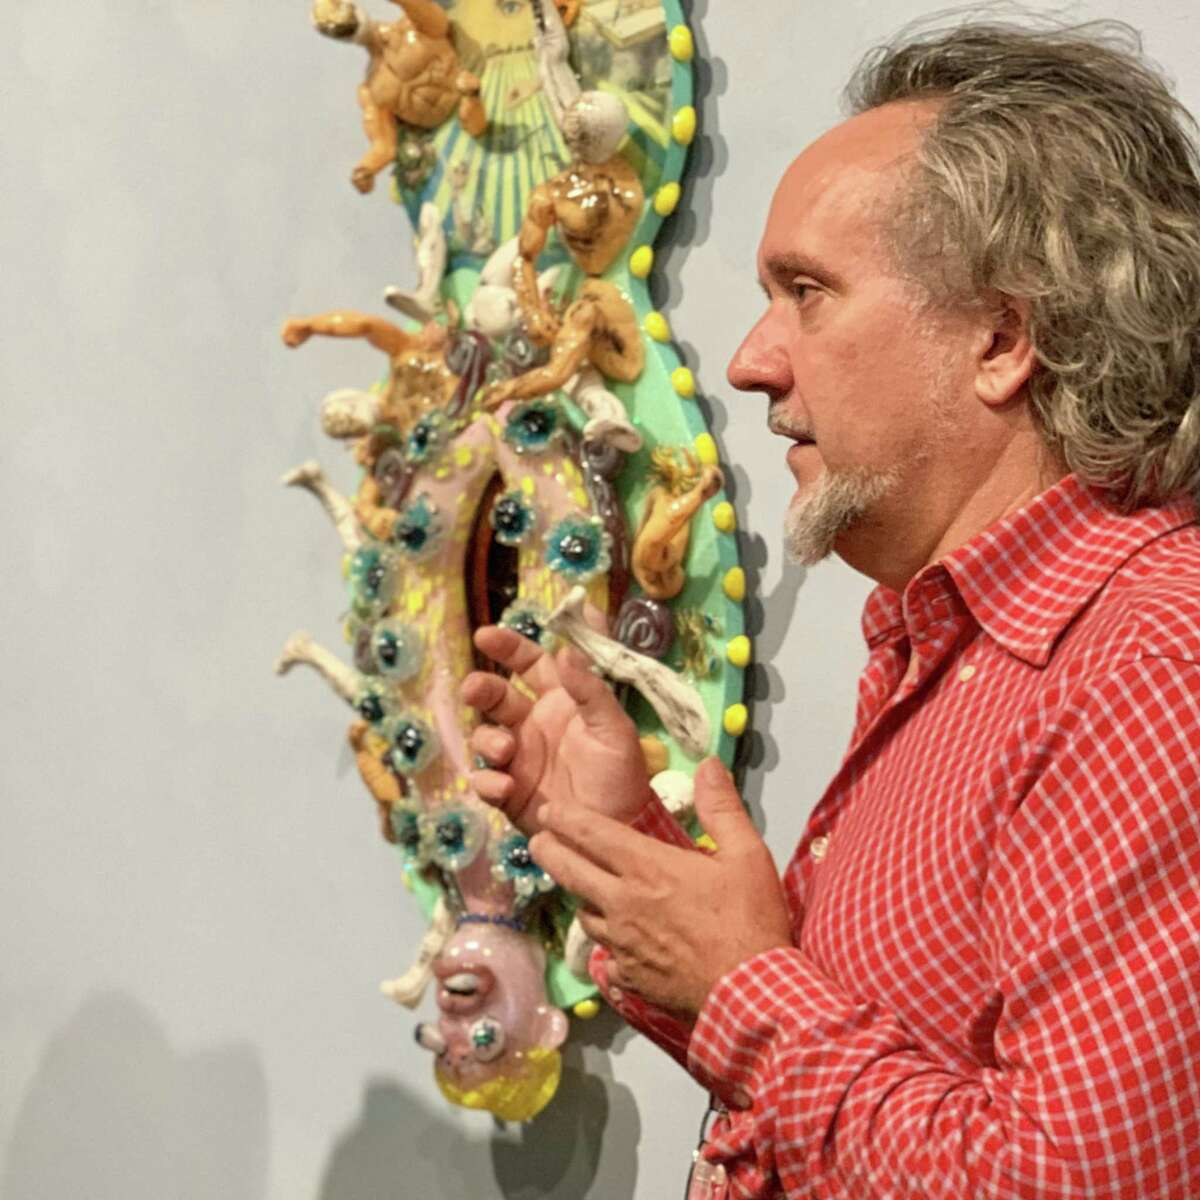 Artist Einar de la Torre gives a tour of his show at Nicole Longnecker Gallery during a visit by Cheech Marin on May 7, 2019.